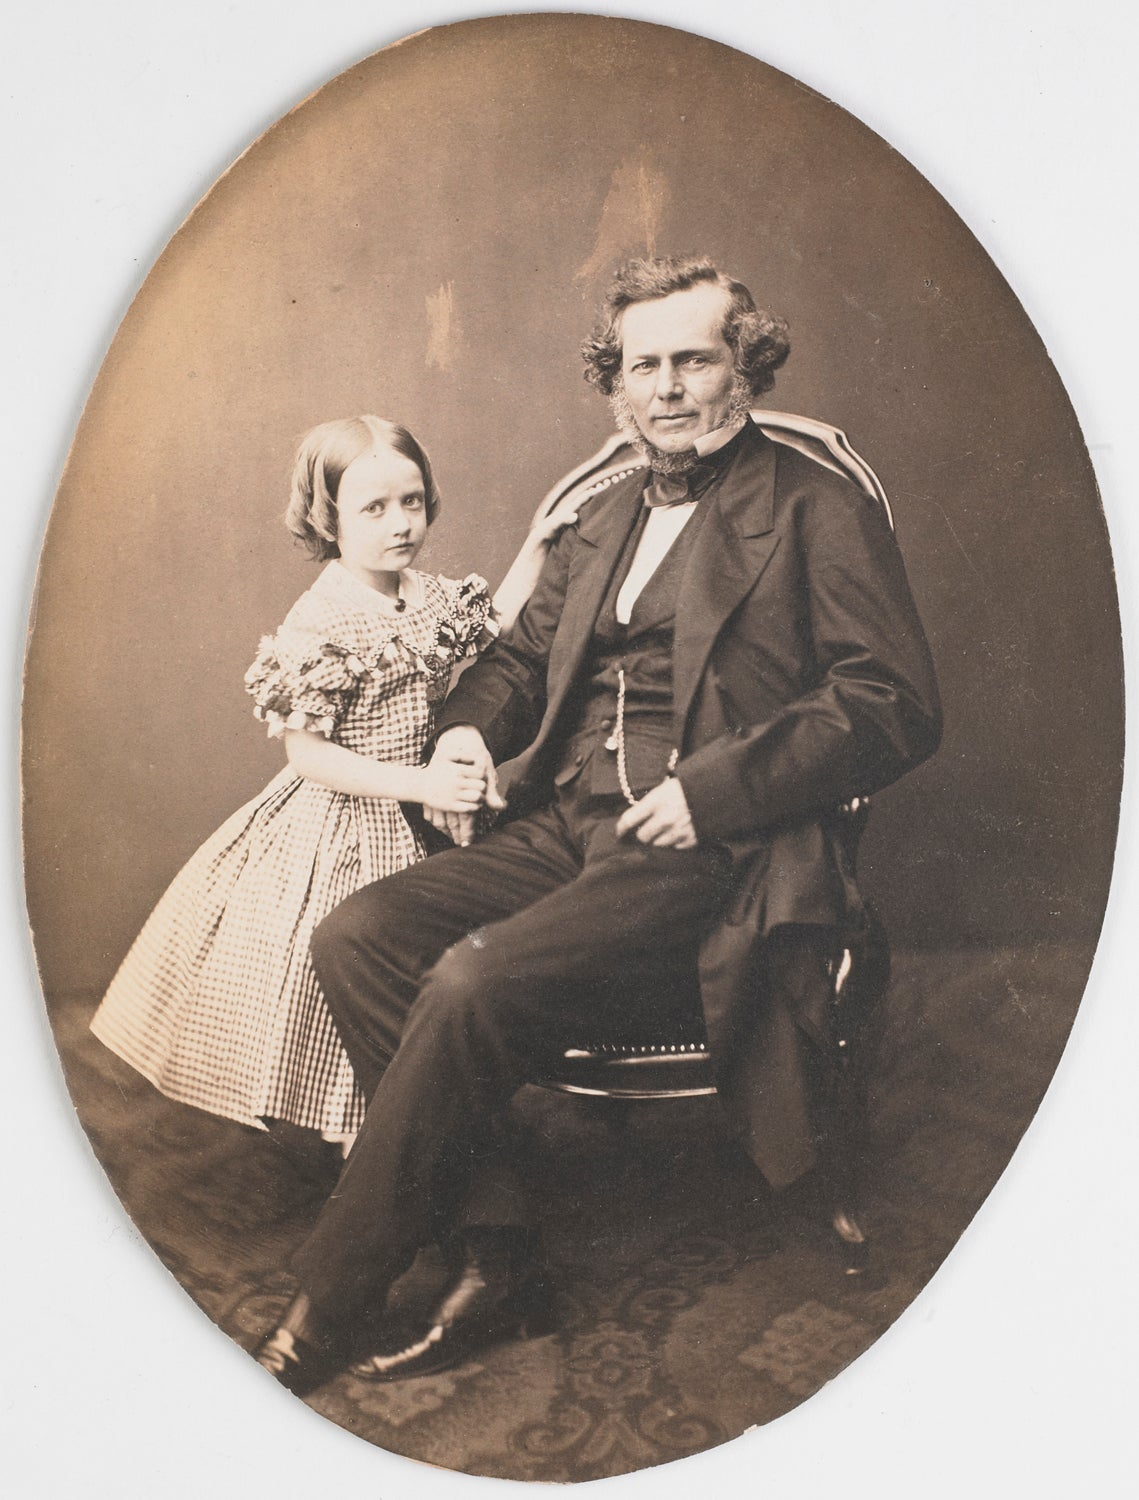 Image of portrait of a man and his daughter